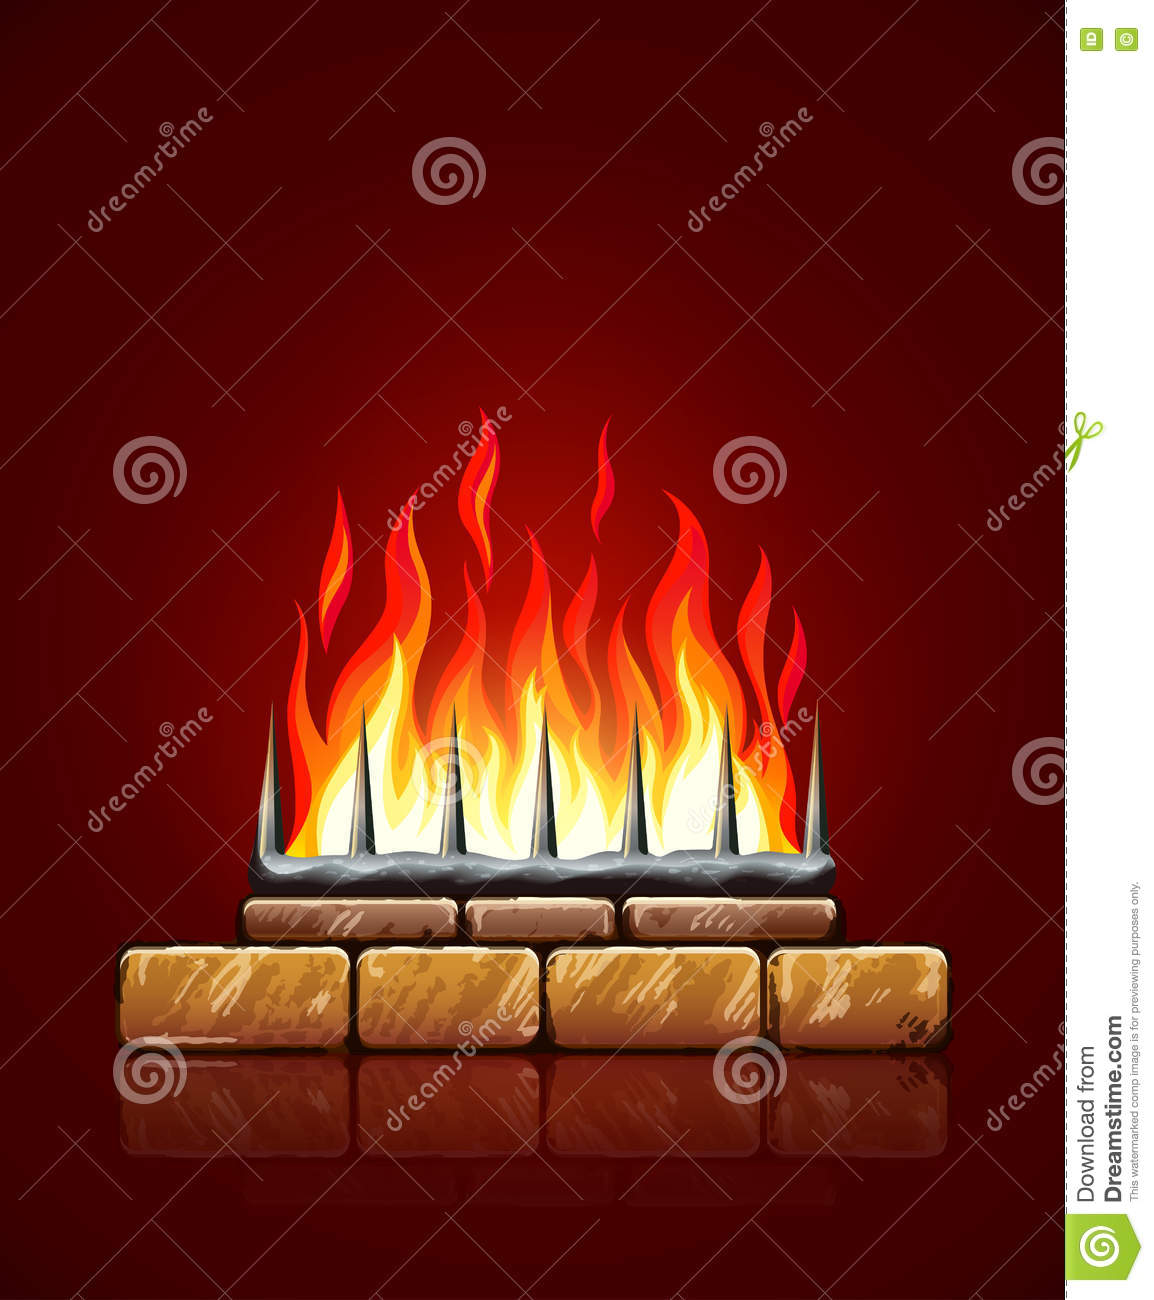 Fire Stones For Fireplace Burning Flames Of Fire In Brick Stones Fireplace Vector Stock